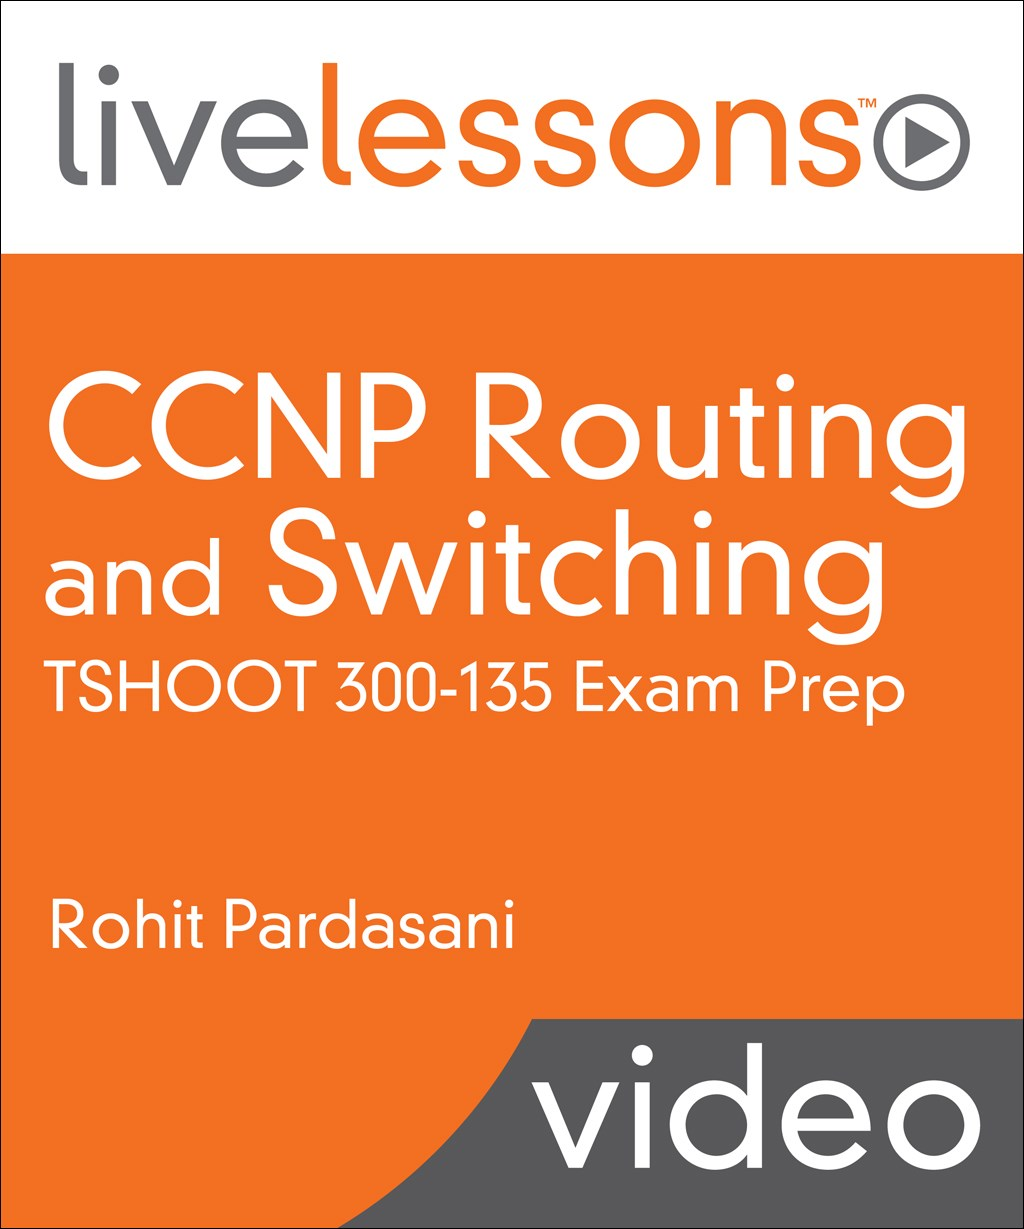 CCNP Routing and Switching TSHOOT 300-135 Exam Prep LiveLessons